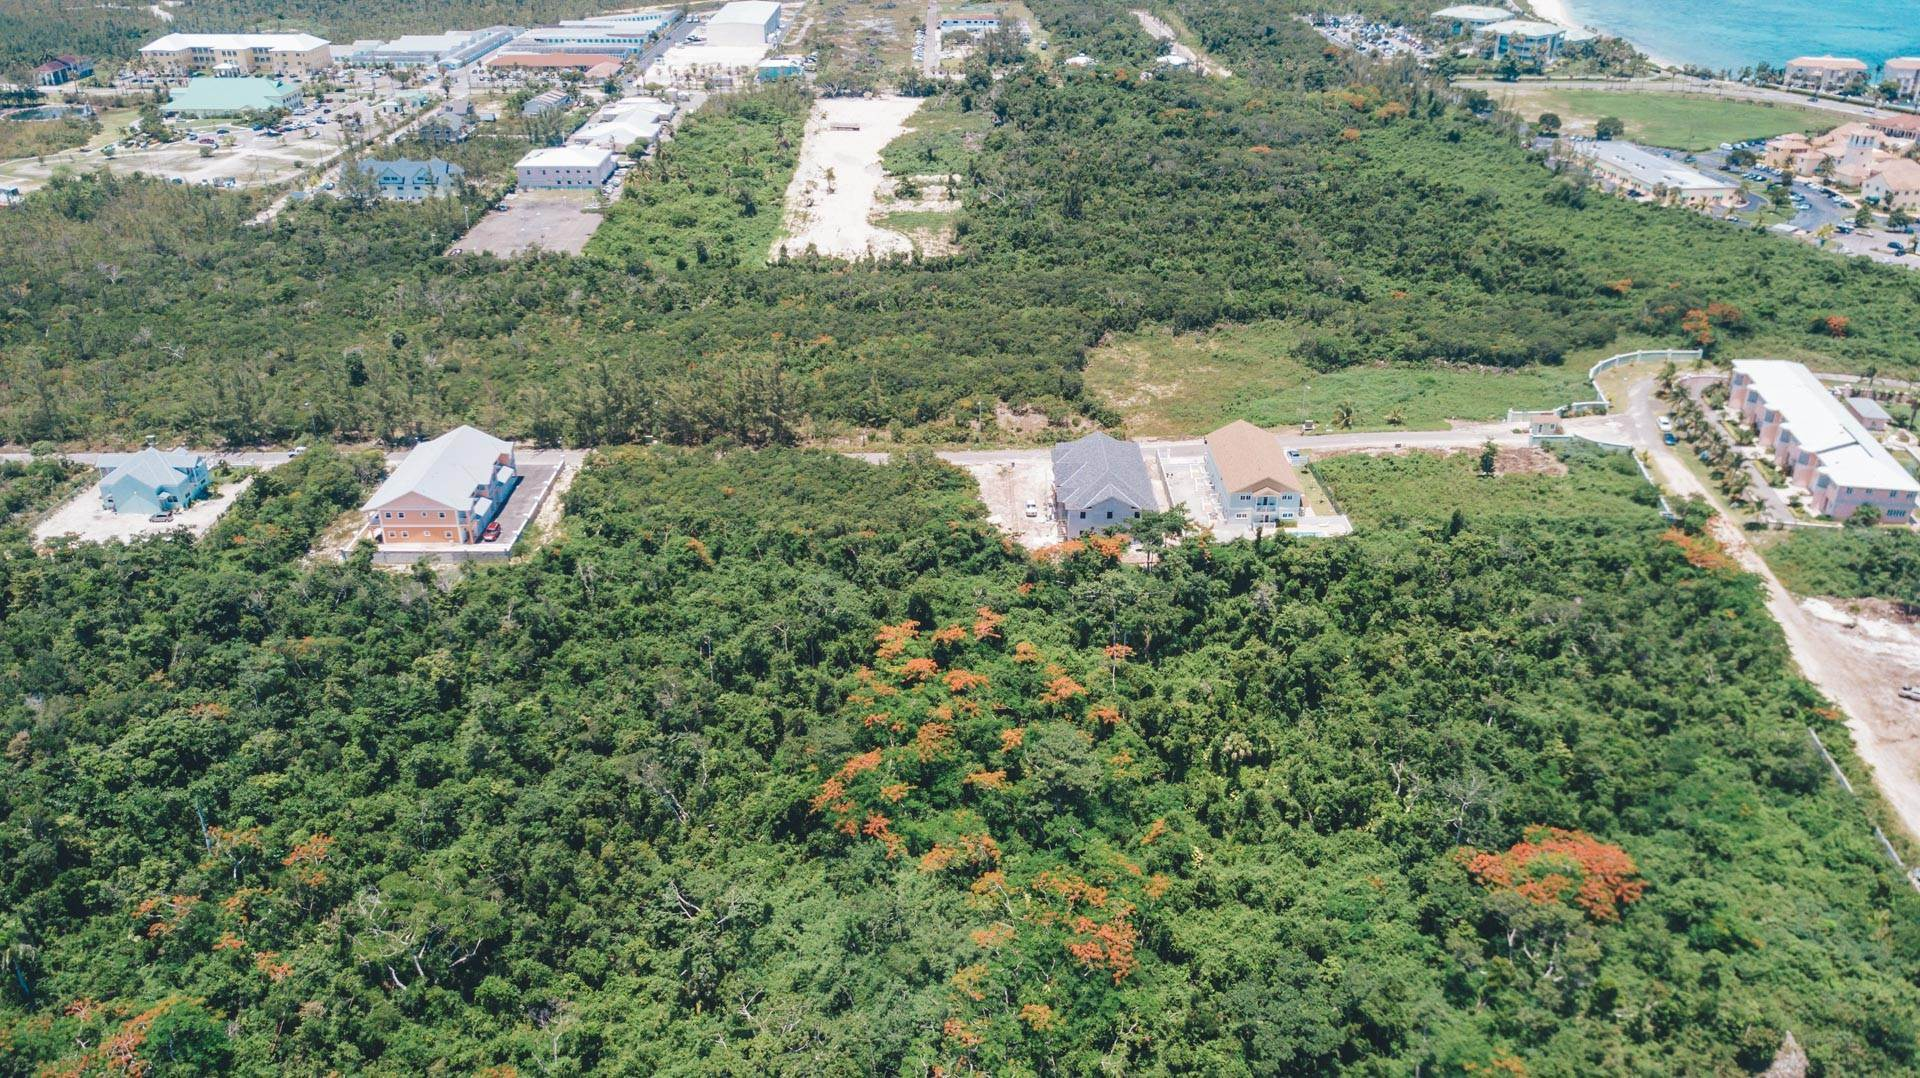 10. Terreno por un Venta en Lot 13 West Lake Plantation - MLS 35050 Nueva Providencia / Nassau, Bahamas